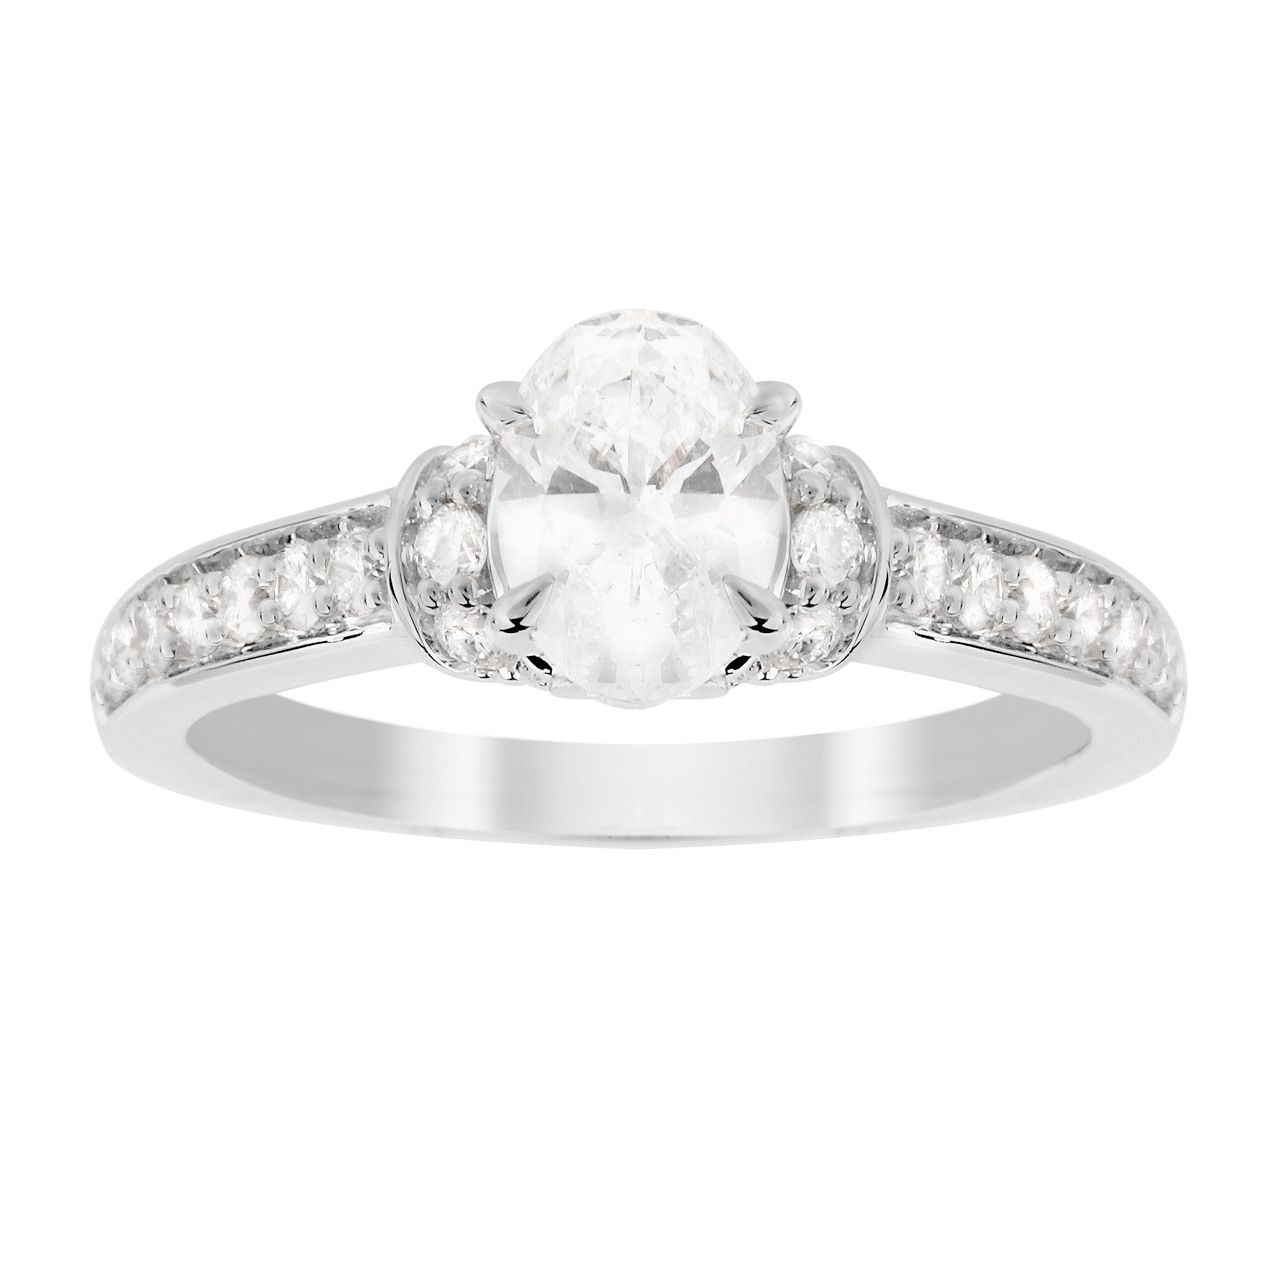 Jenny Packham Oval Cut 0.85 Carat Total Weight Diamond Art Deco Style Ring in 18 Carat White Gold